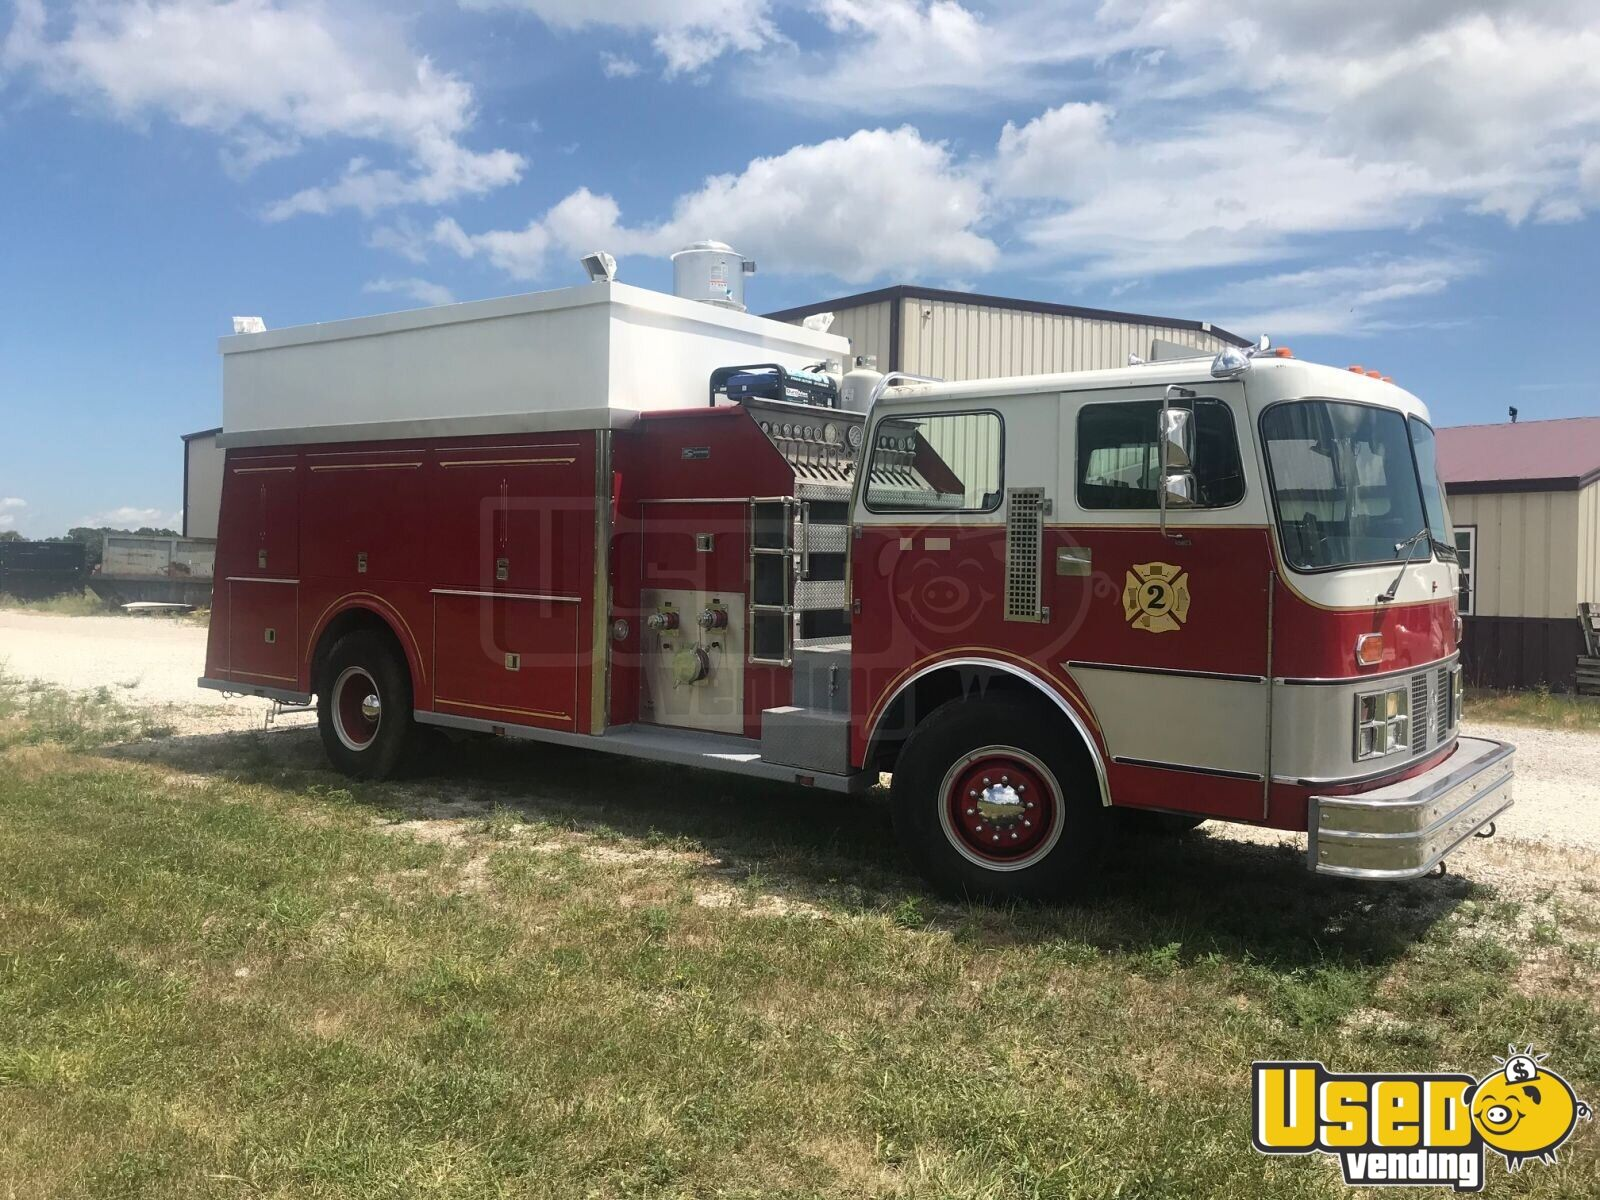 1995 All-purpose Food Truck Gfi Outlets Missouri Diesel Engine for Sale - 11